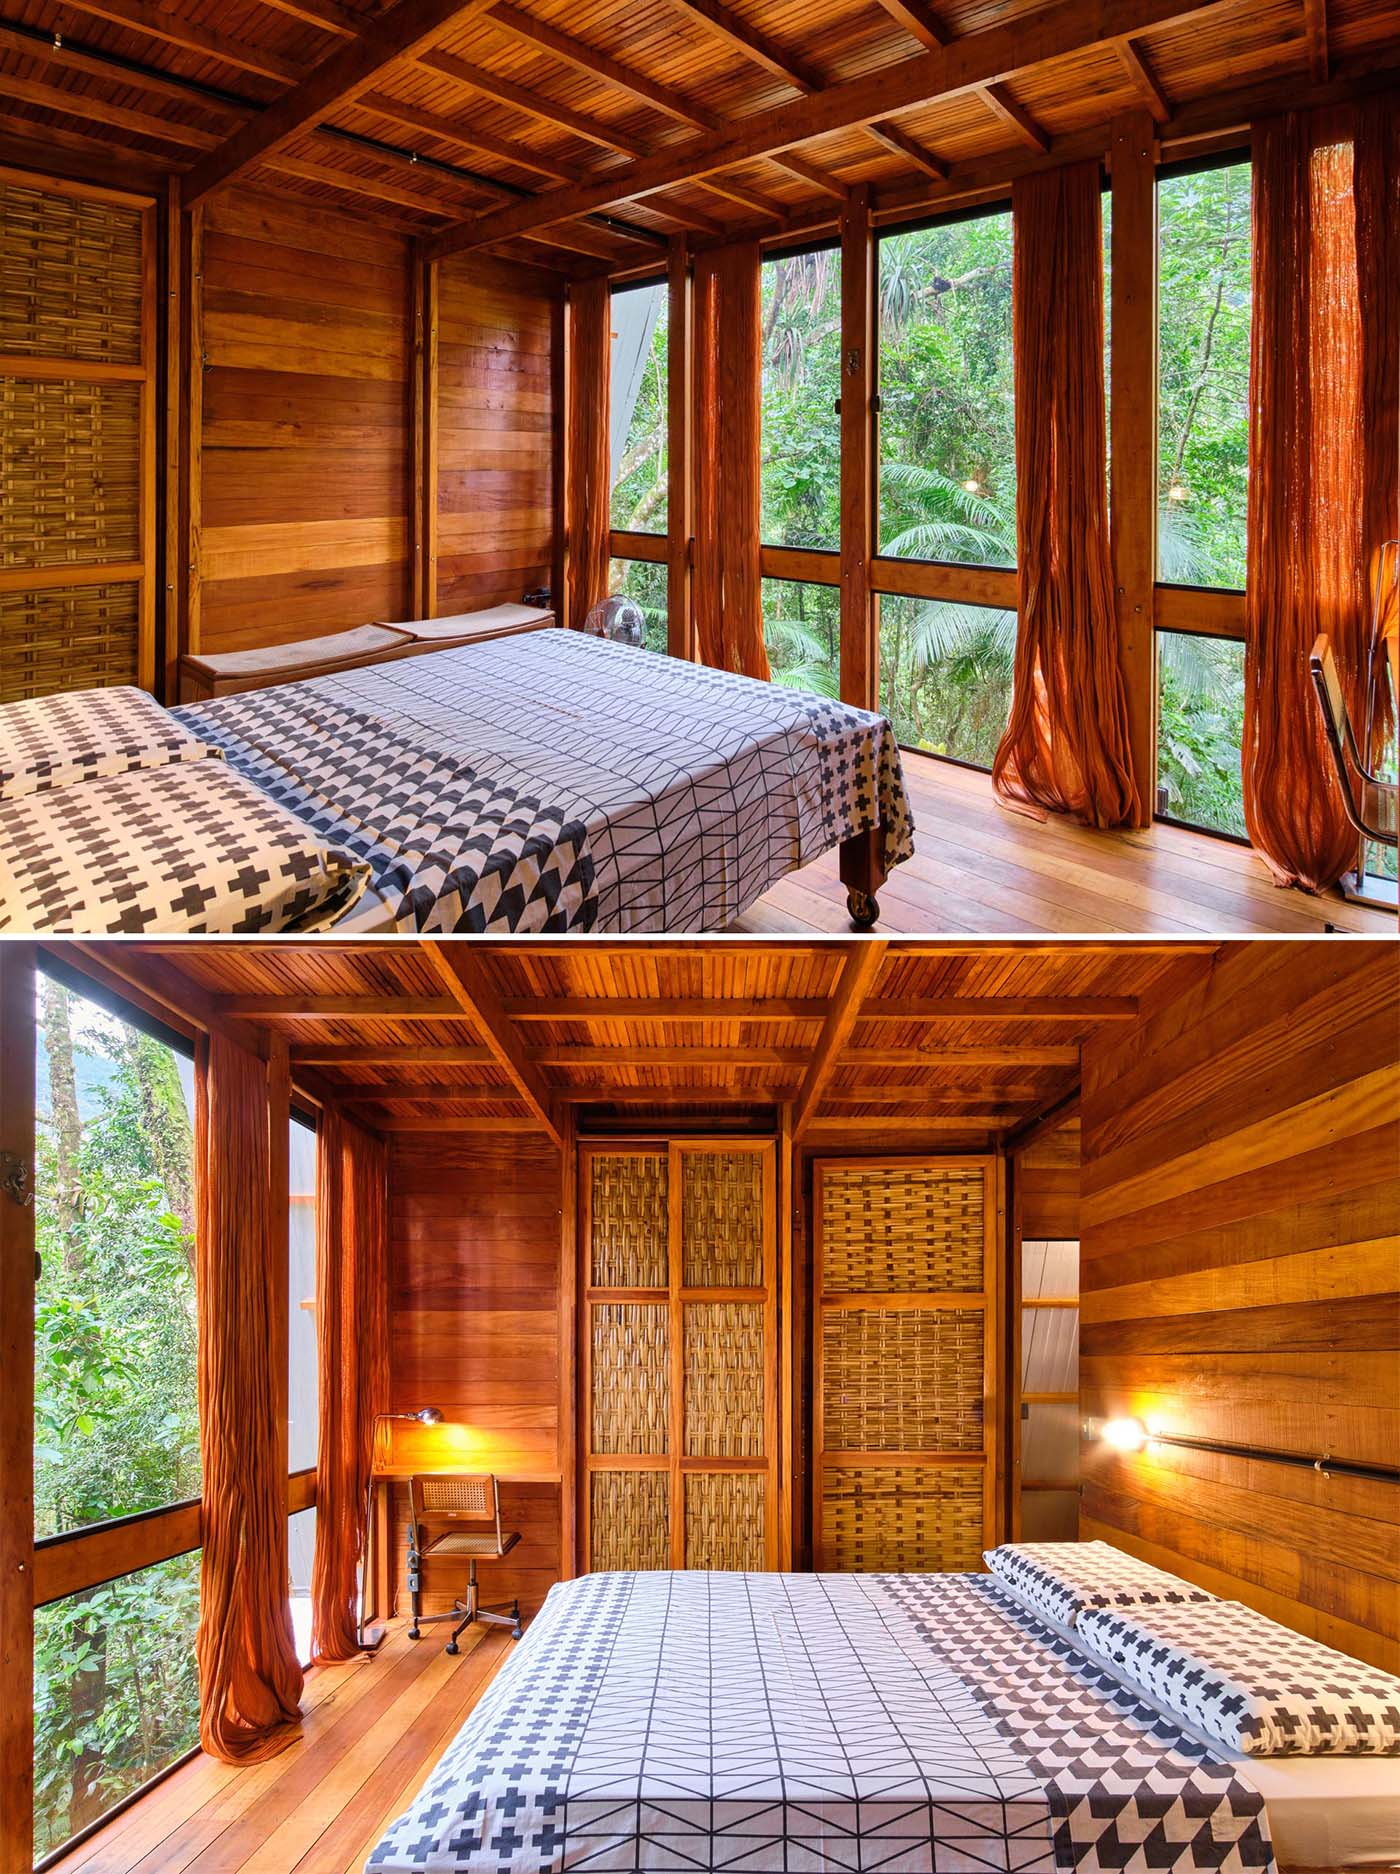 The bedroom of an A-frame cabin with a warm wood interior and floor-to-ceiling windows.